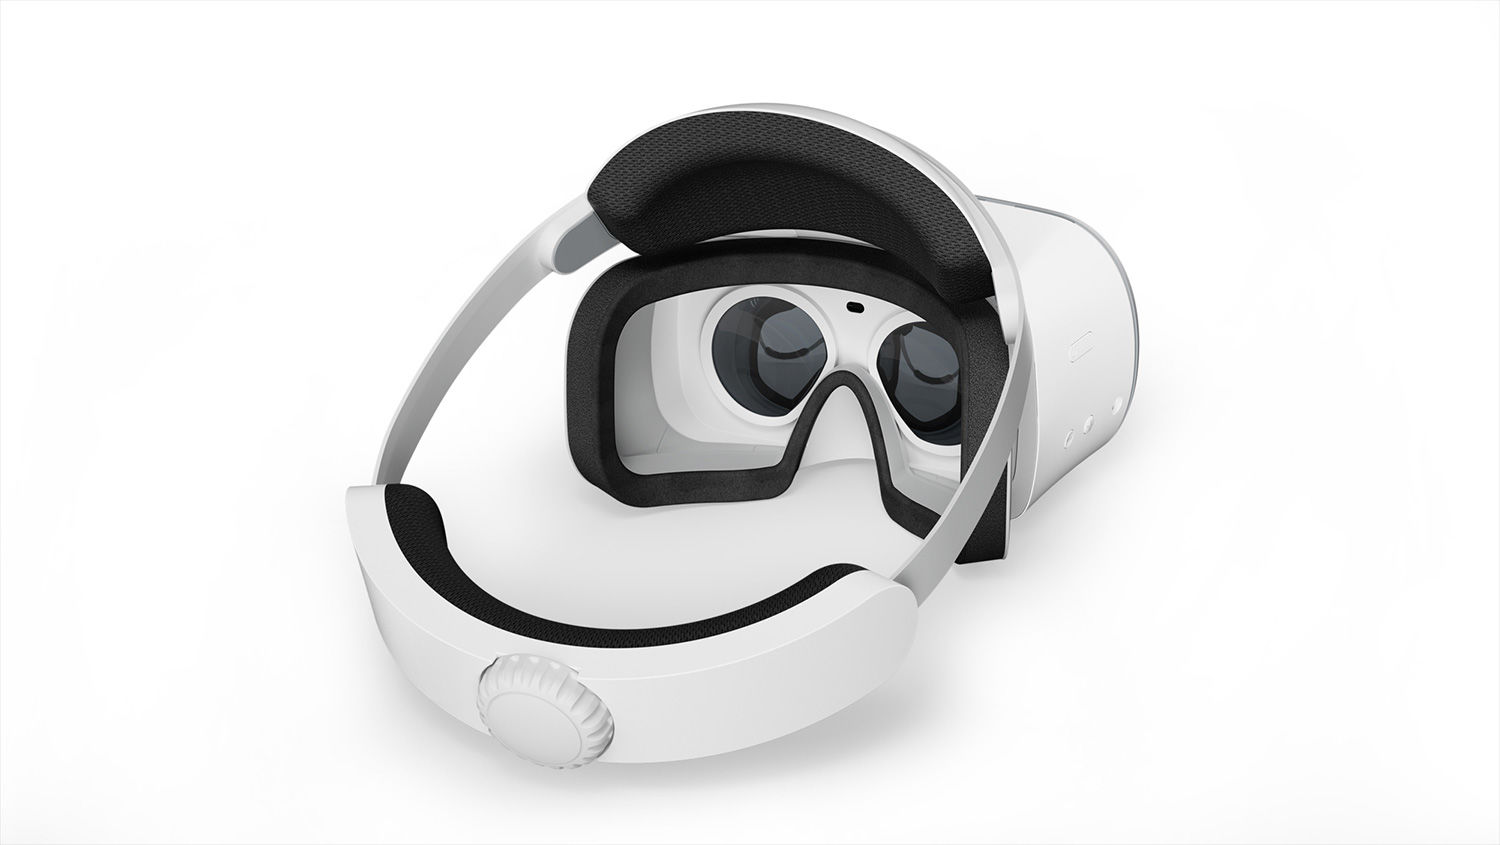 Lenovo's Mirage Solo is a brilliant wireless VR headset you can move around wearing - News - Digital Arts